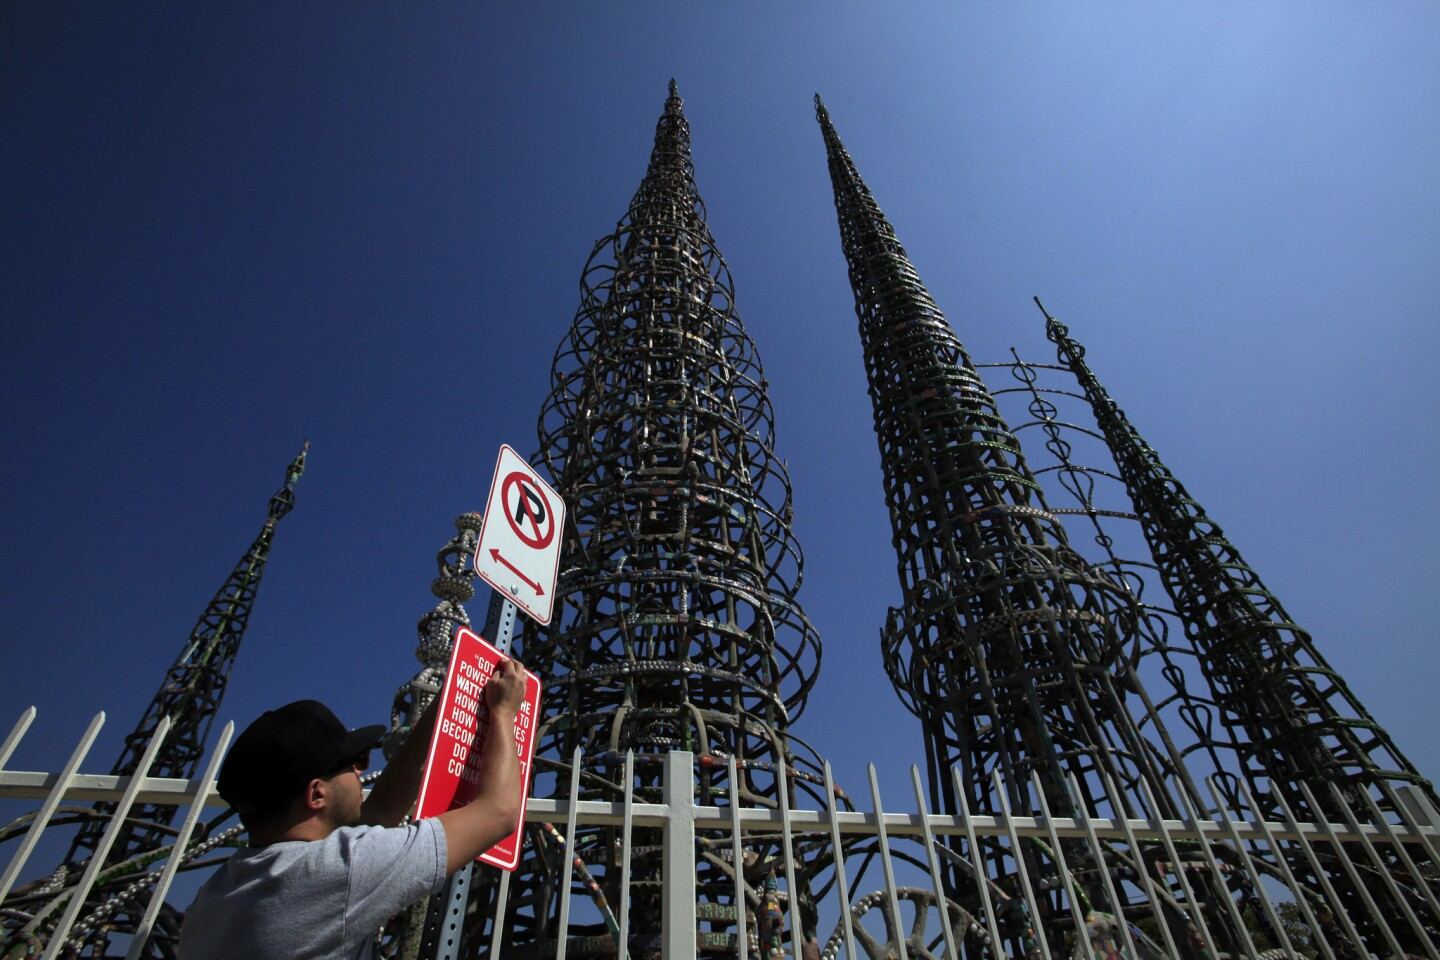 """Street artist Jason Shelowitz (a.k.a. Jay Shells) installs a sign at Watts Towers featuring rap lyrics by Crooked I: """"Got street power from the Watts Towers to Howard Hughes. How would you become me I don't Do what you cowards do."""""""